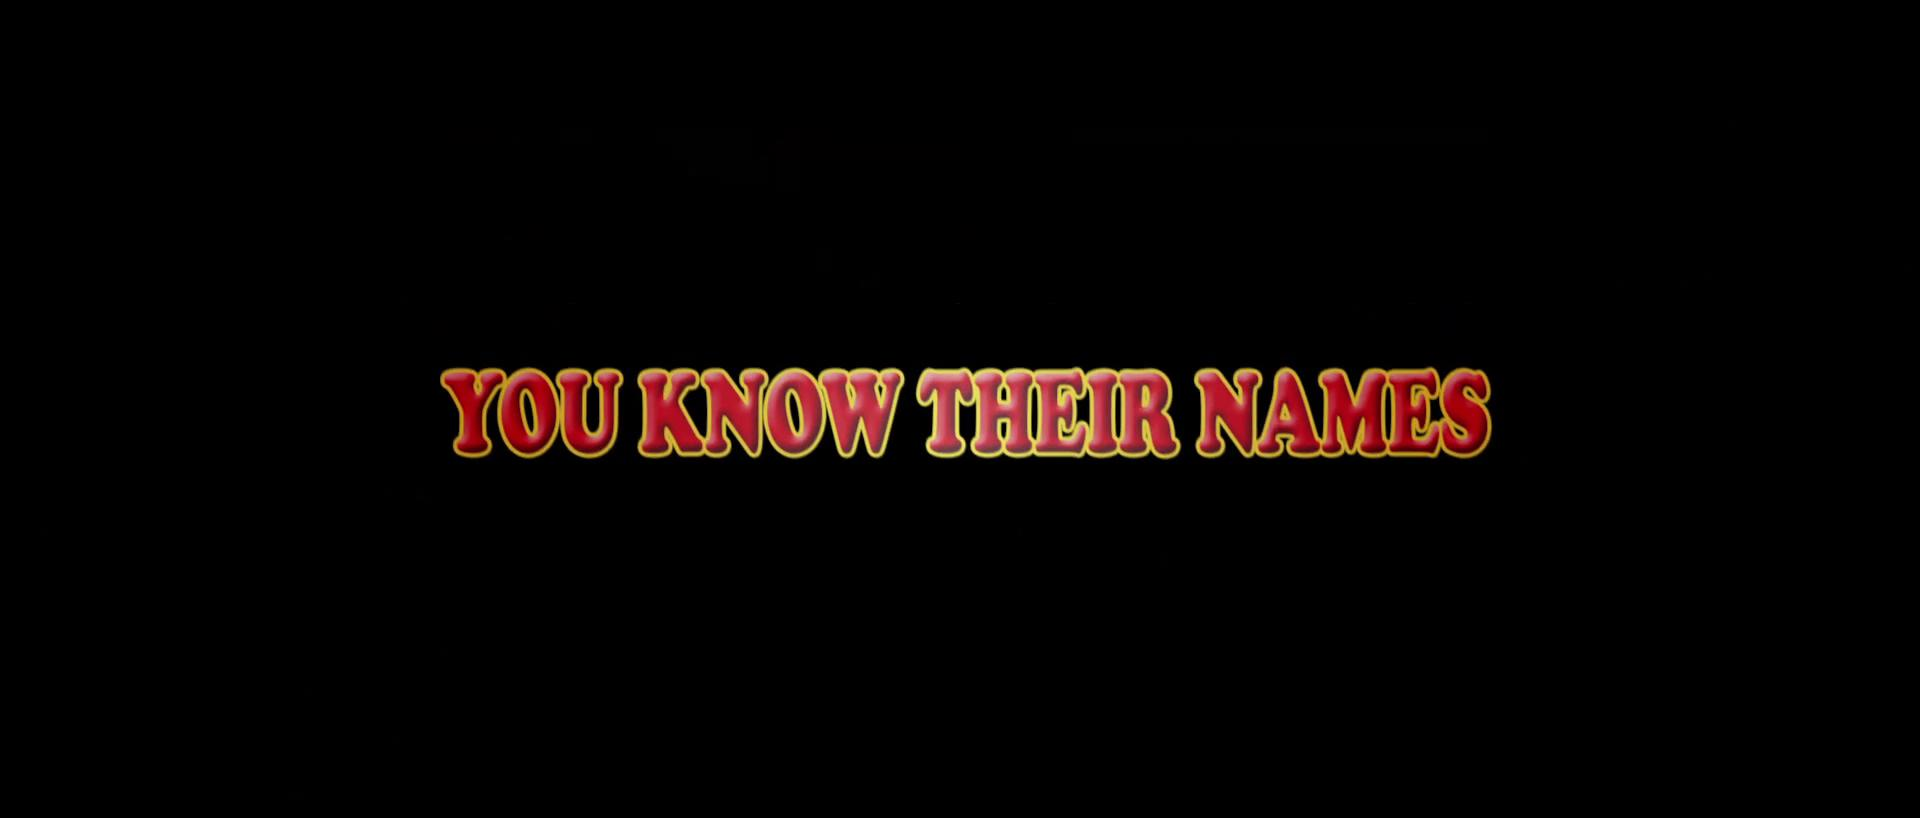 rfmt-21-you-know-their-names